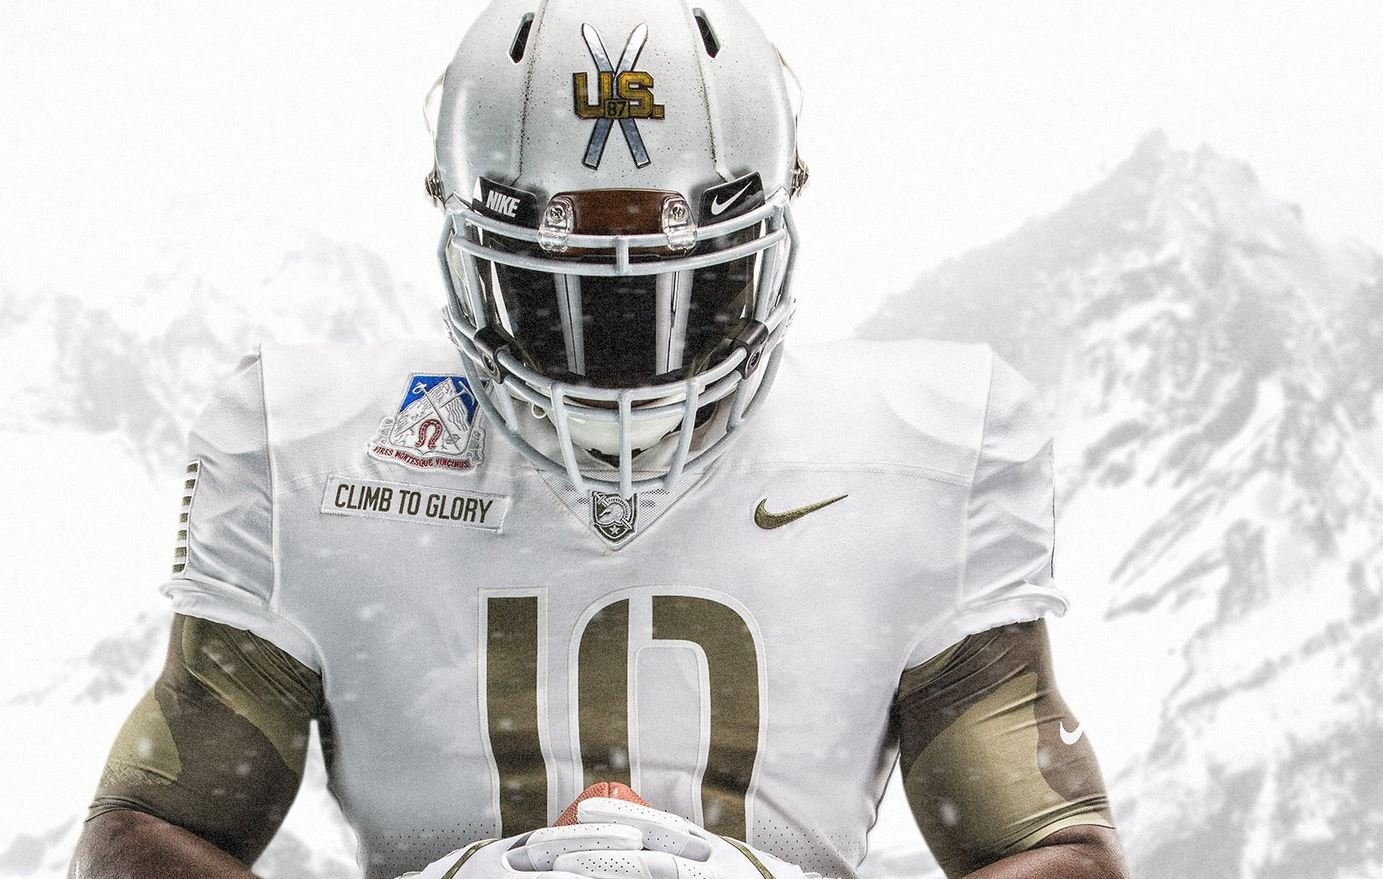 Army unveils epic uniforms ahead of game vs. Navy